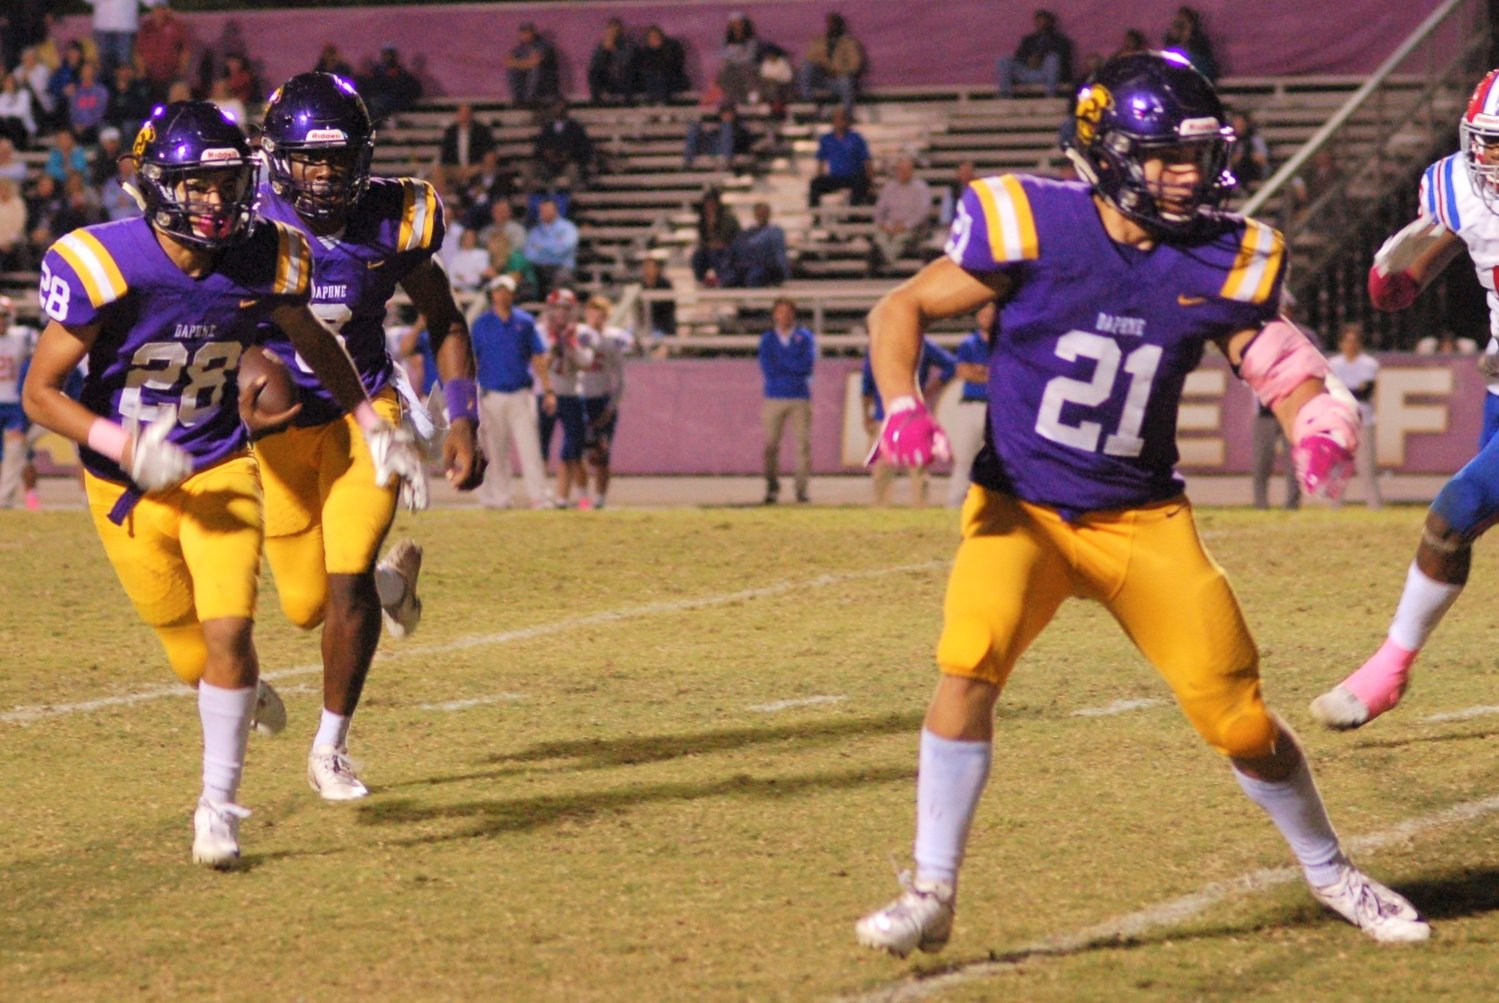 DHS quarterback Trent Battle gets lead blocking from Veontai Williams (28) and Davis Oliver (21) at Jubilee Stadium Oct. 24. The Trojans (5-4, 5-2) picked up their fifth Region 1 win. The Saints fell to 6-3, 5-2.